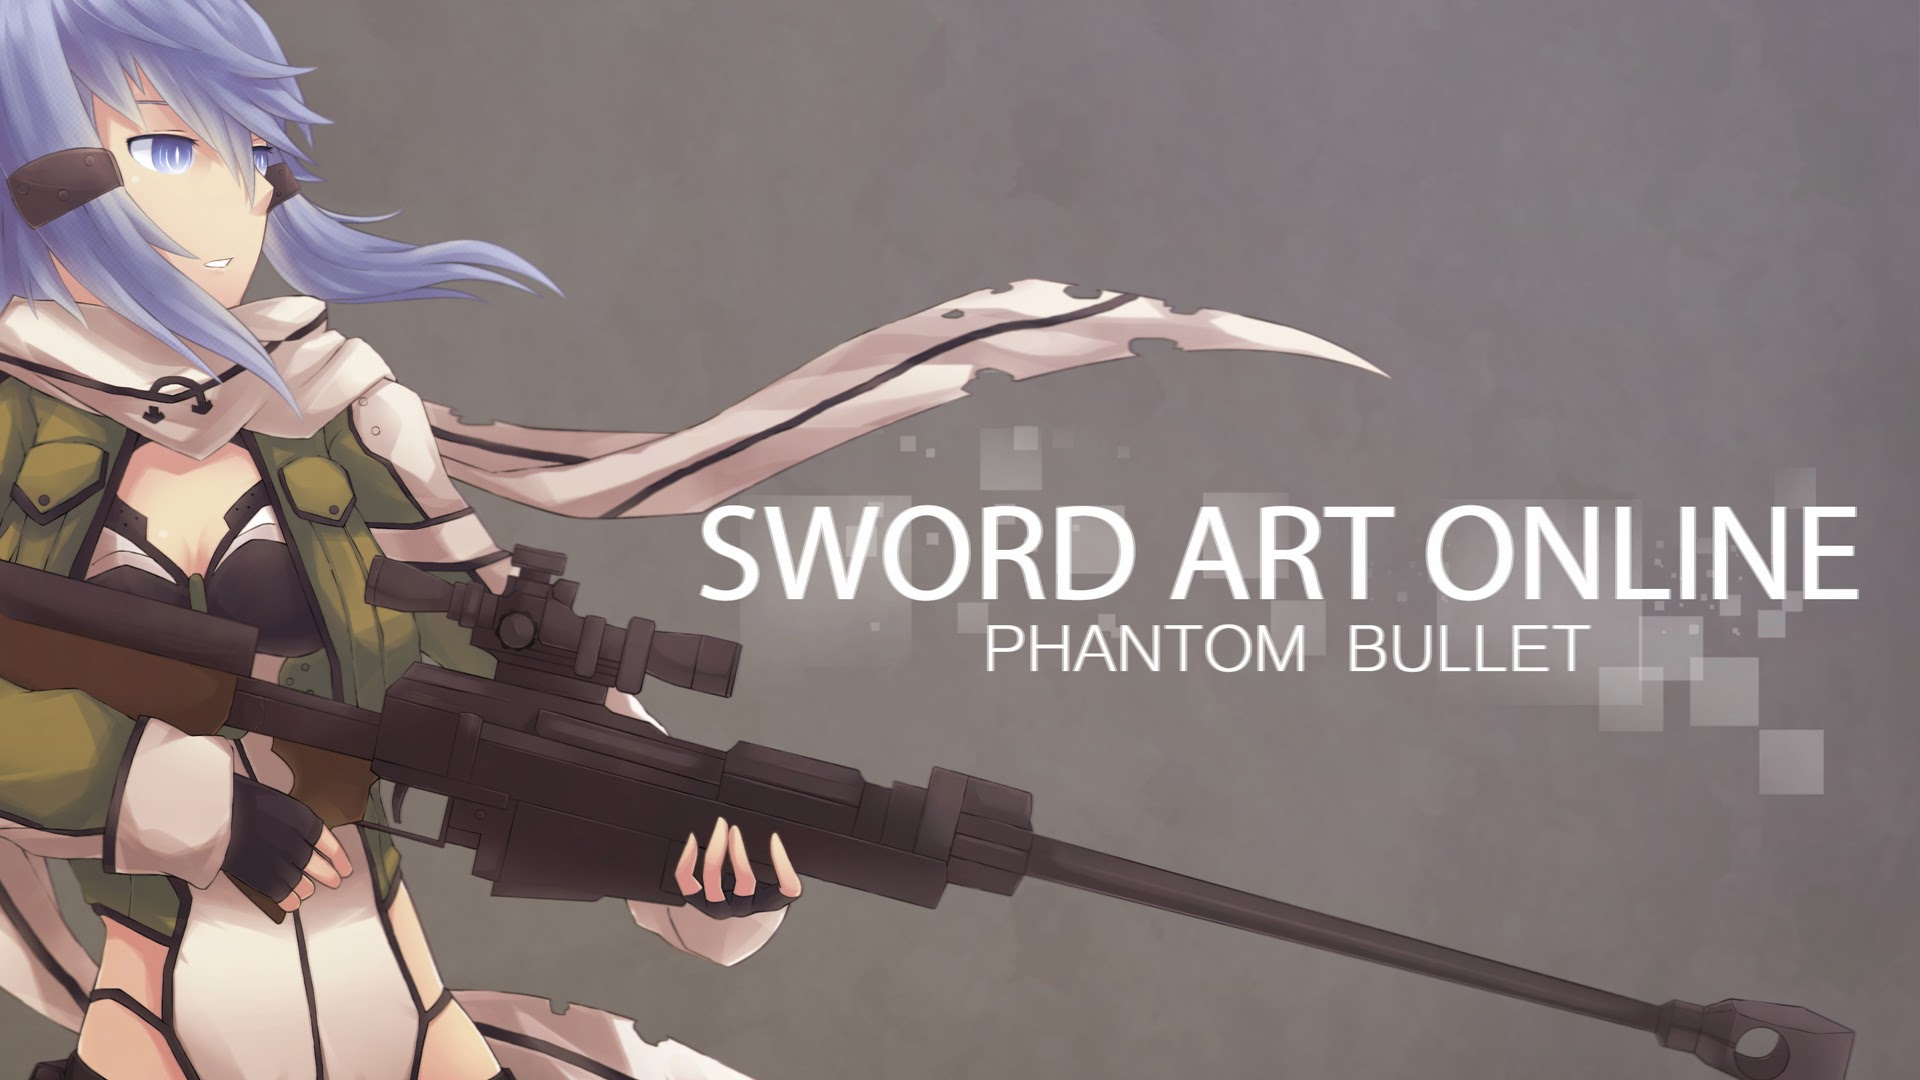 Descargar Sword Art Online 2 Phantom Bullet - Capitulo 2 HD